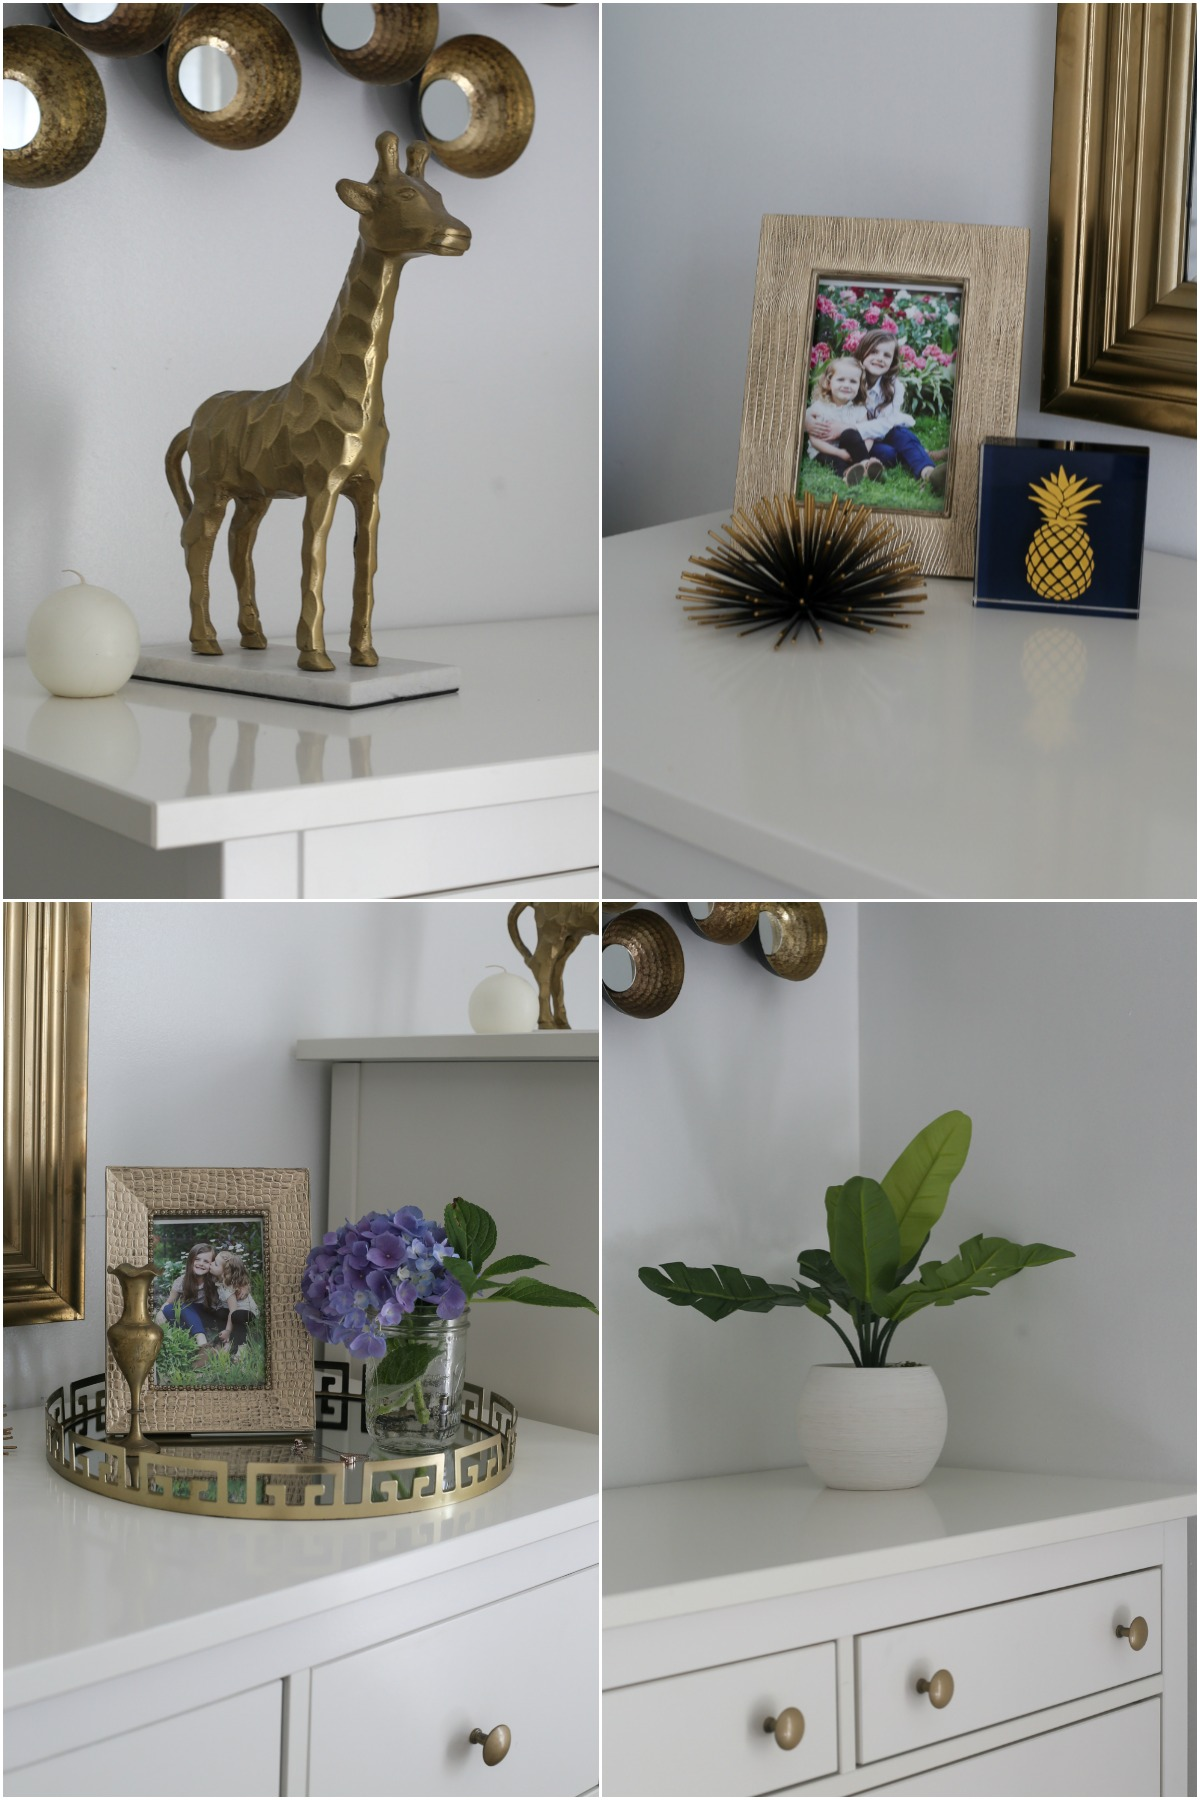 A collage of the different decorations we have in the bedroom.